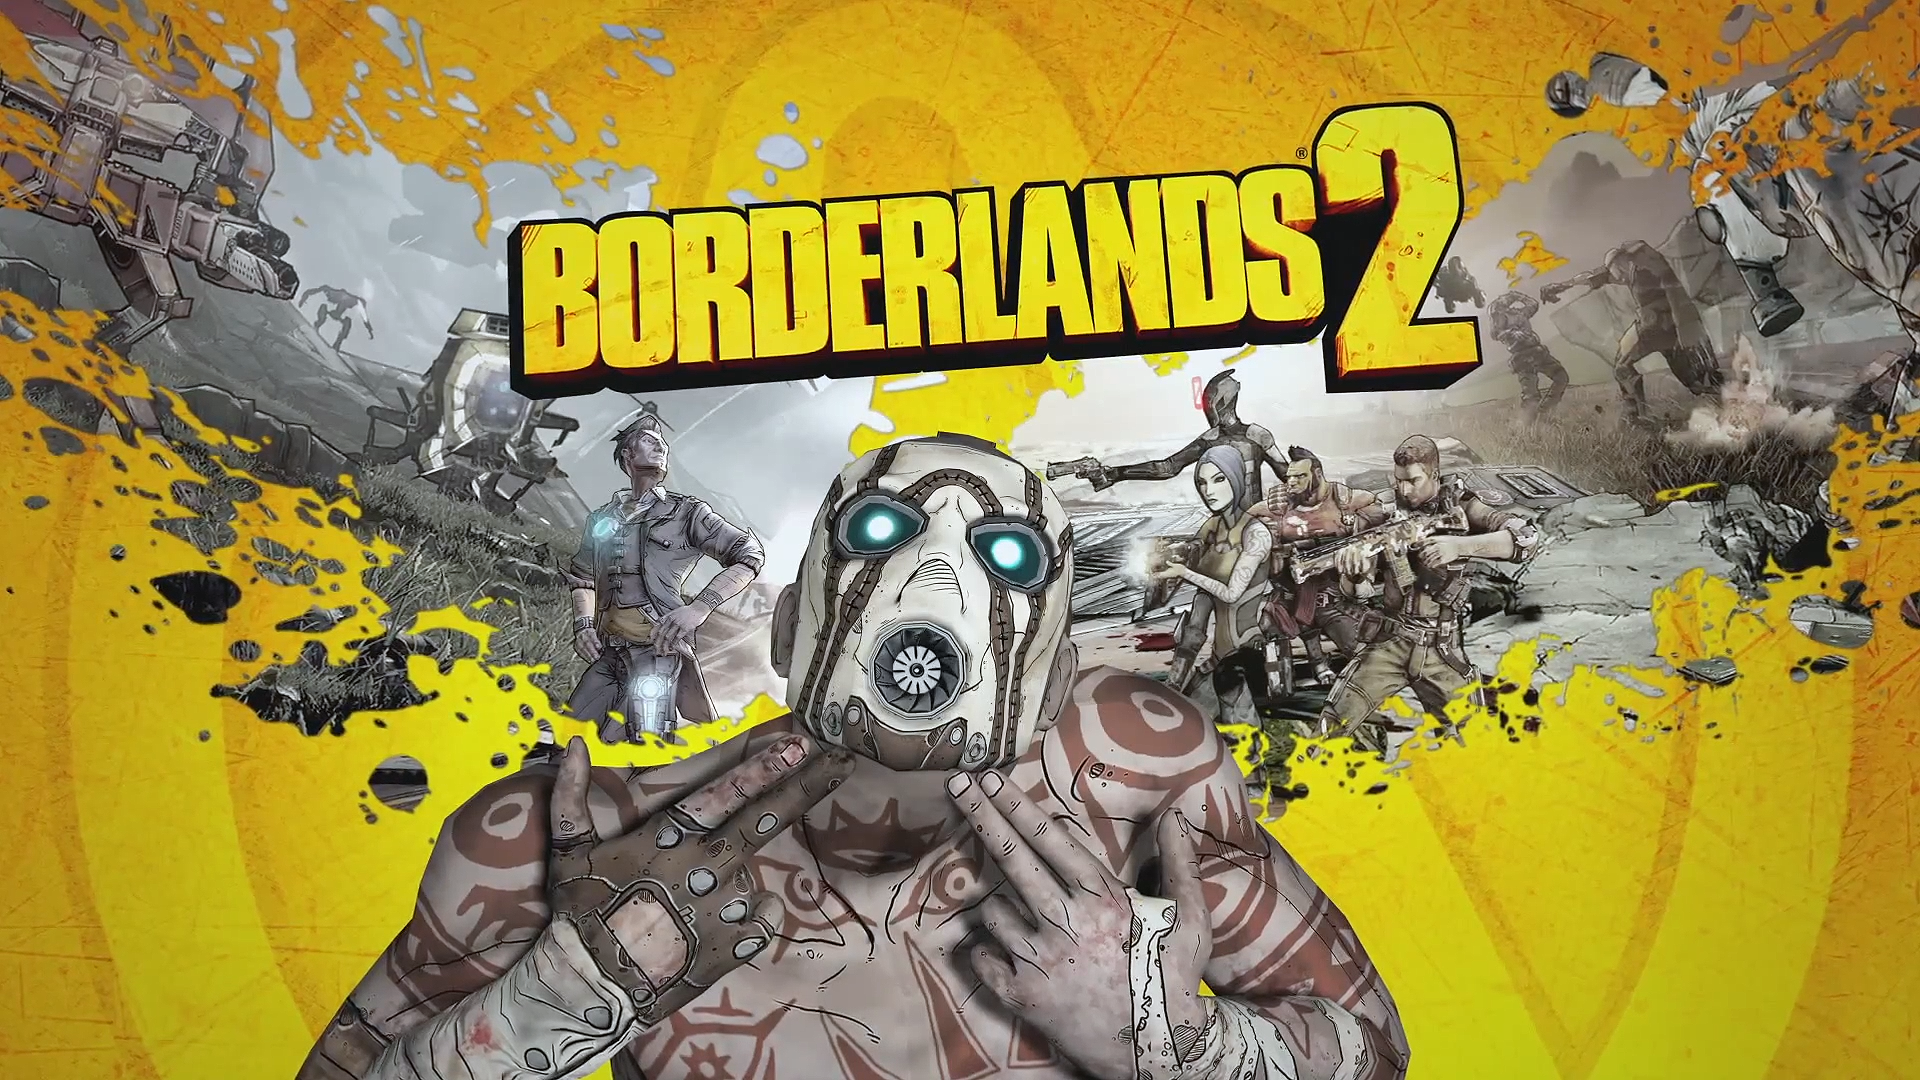 Borderlands 2 Wallpaper A4 - HD Desktop Wallpapers